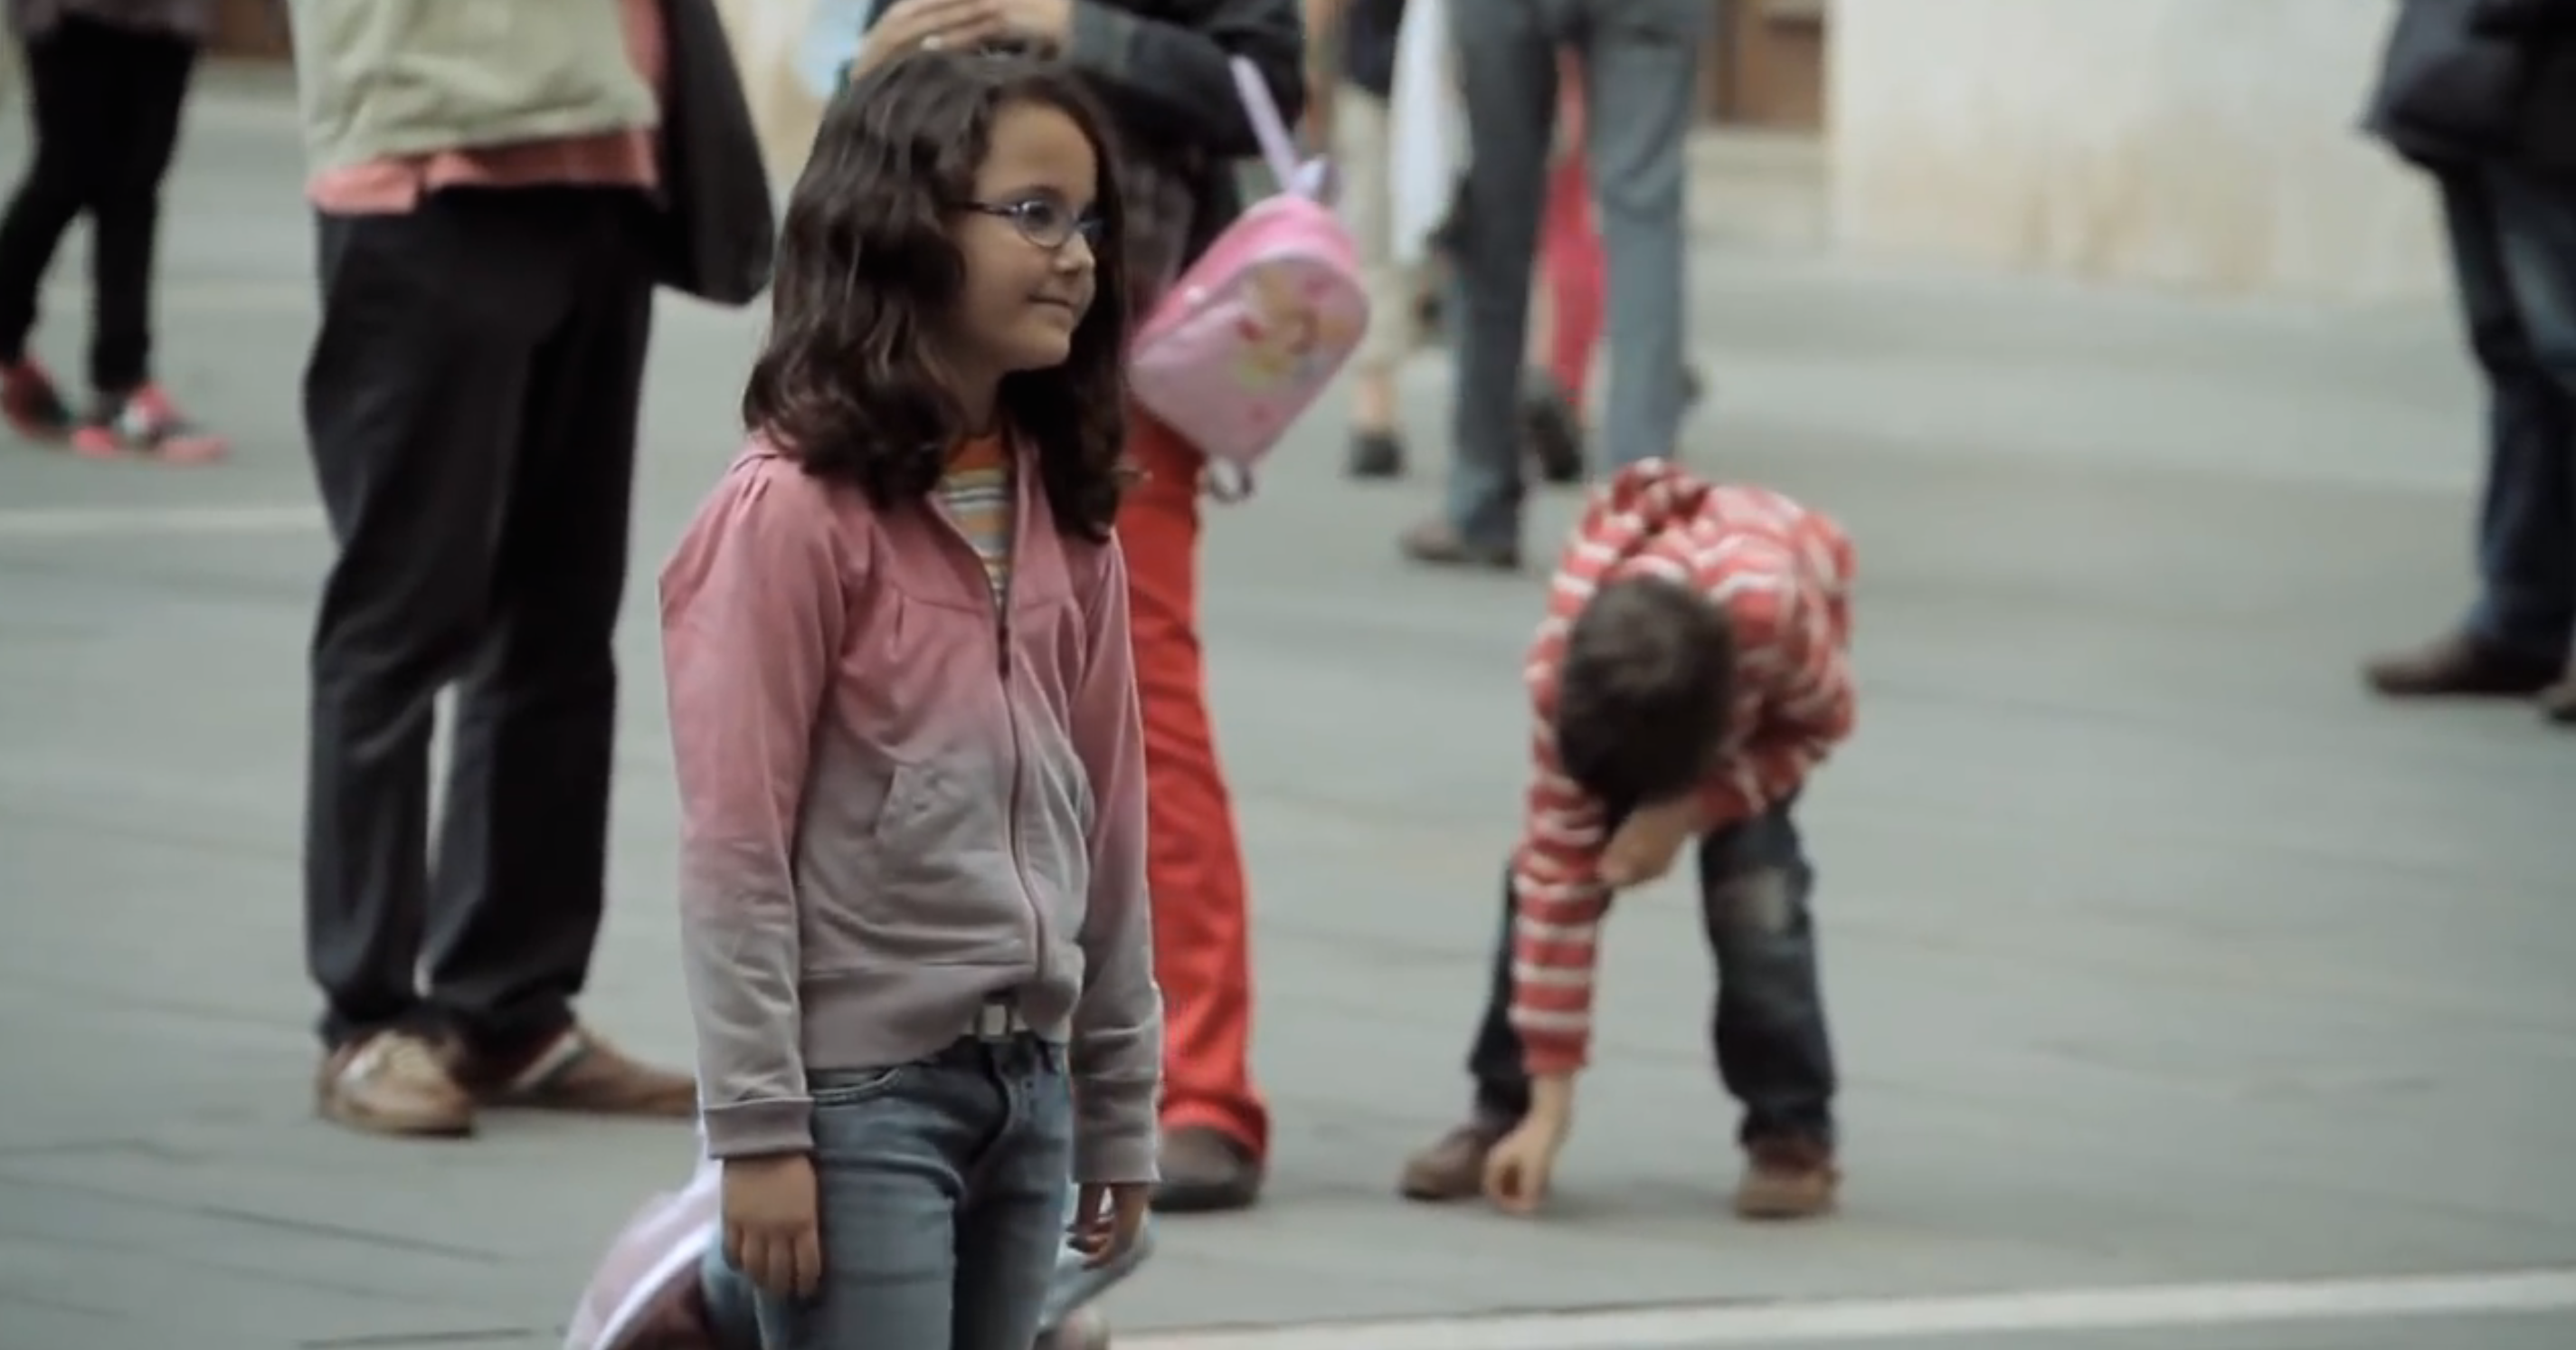 This Little Girl Gave A Few Coins To A Street Performer. The Unexpected Response She Got Was Unbelievable!